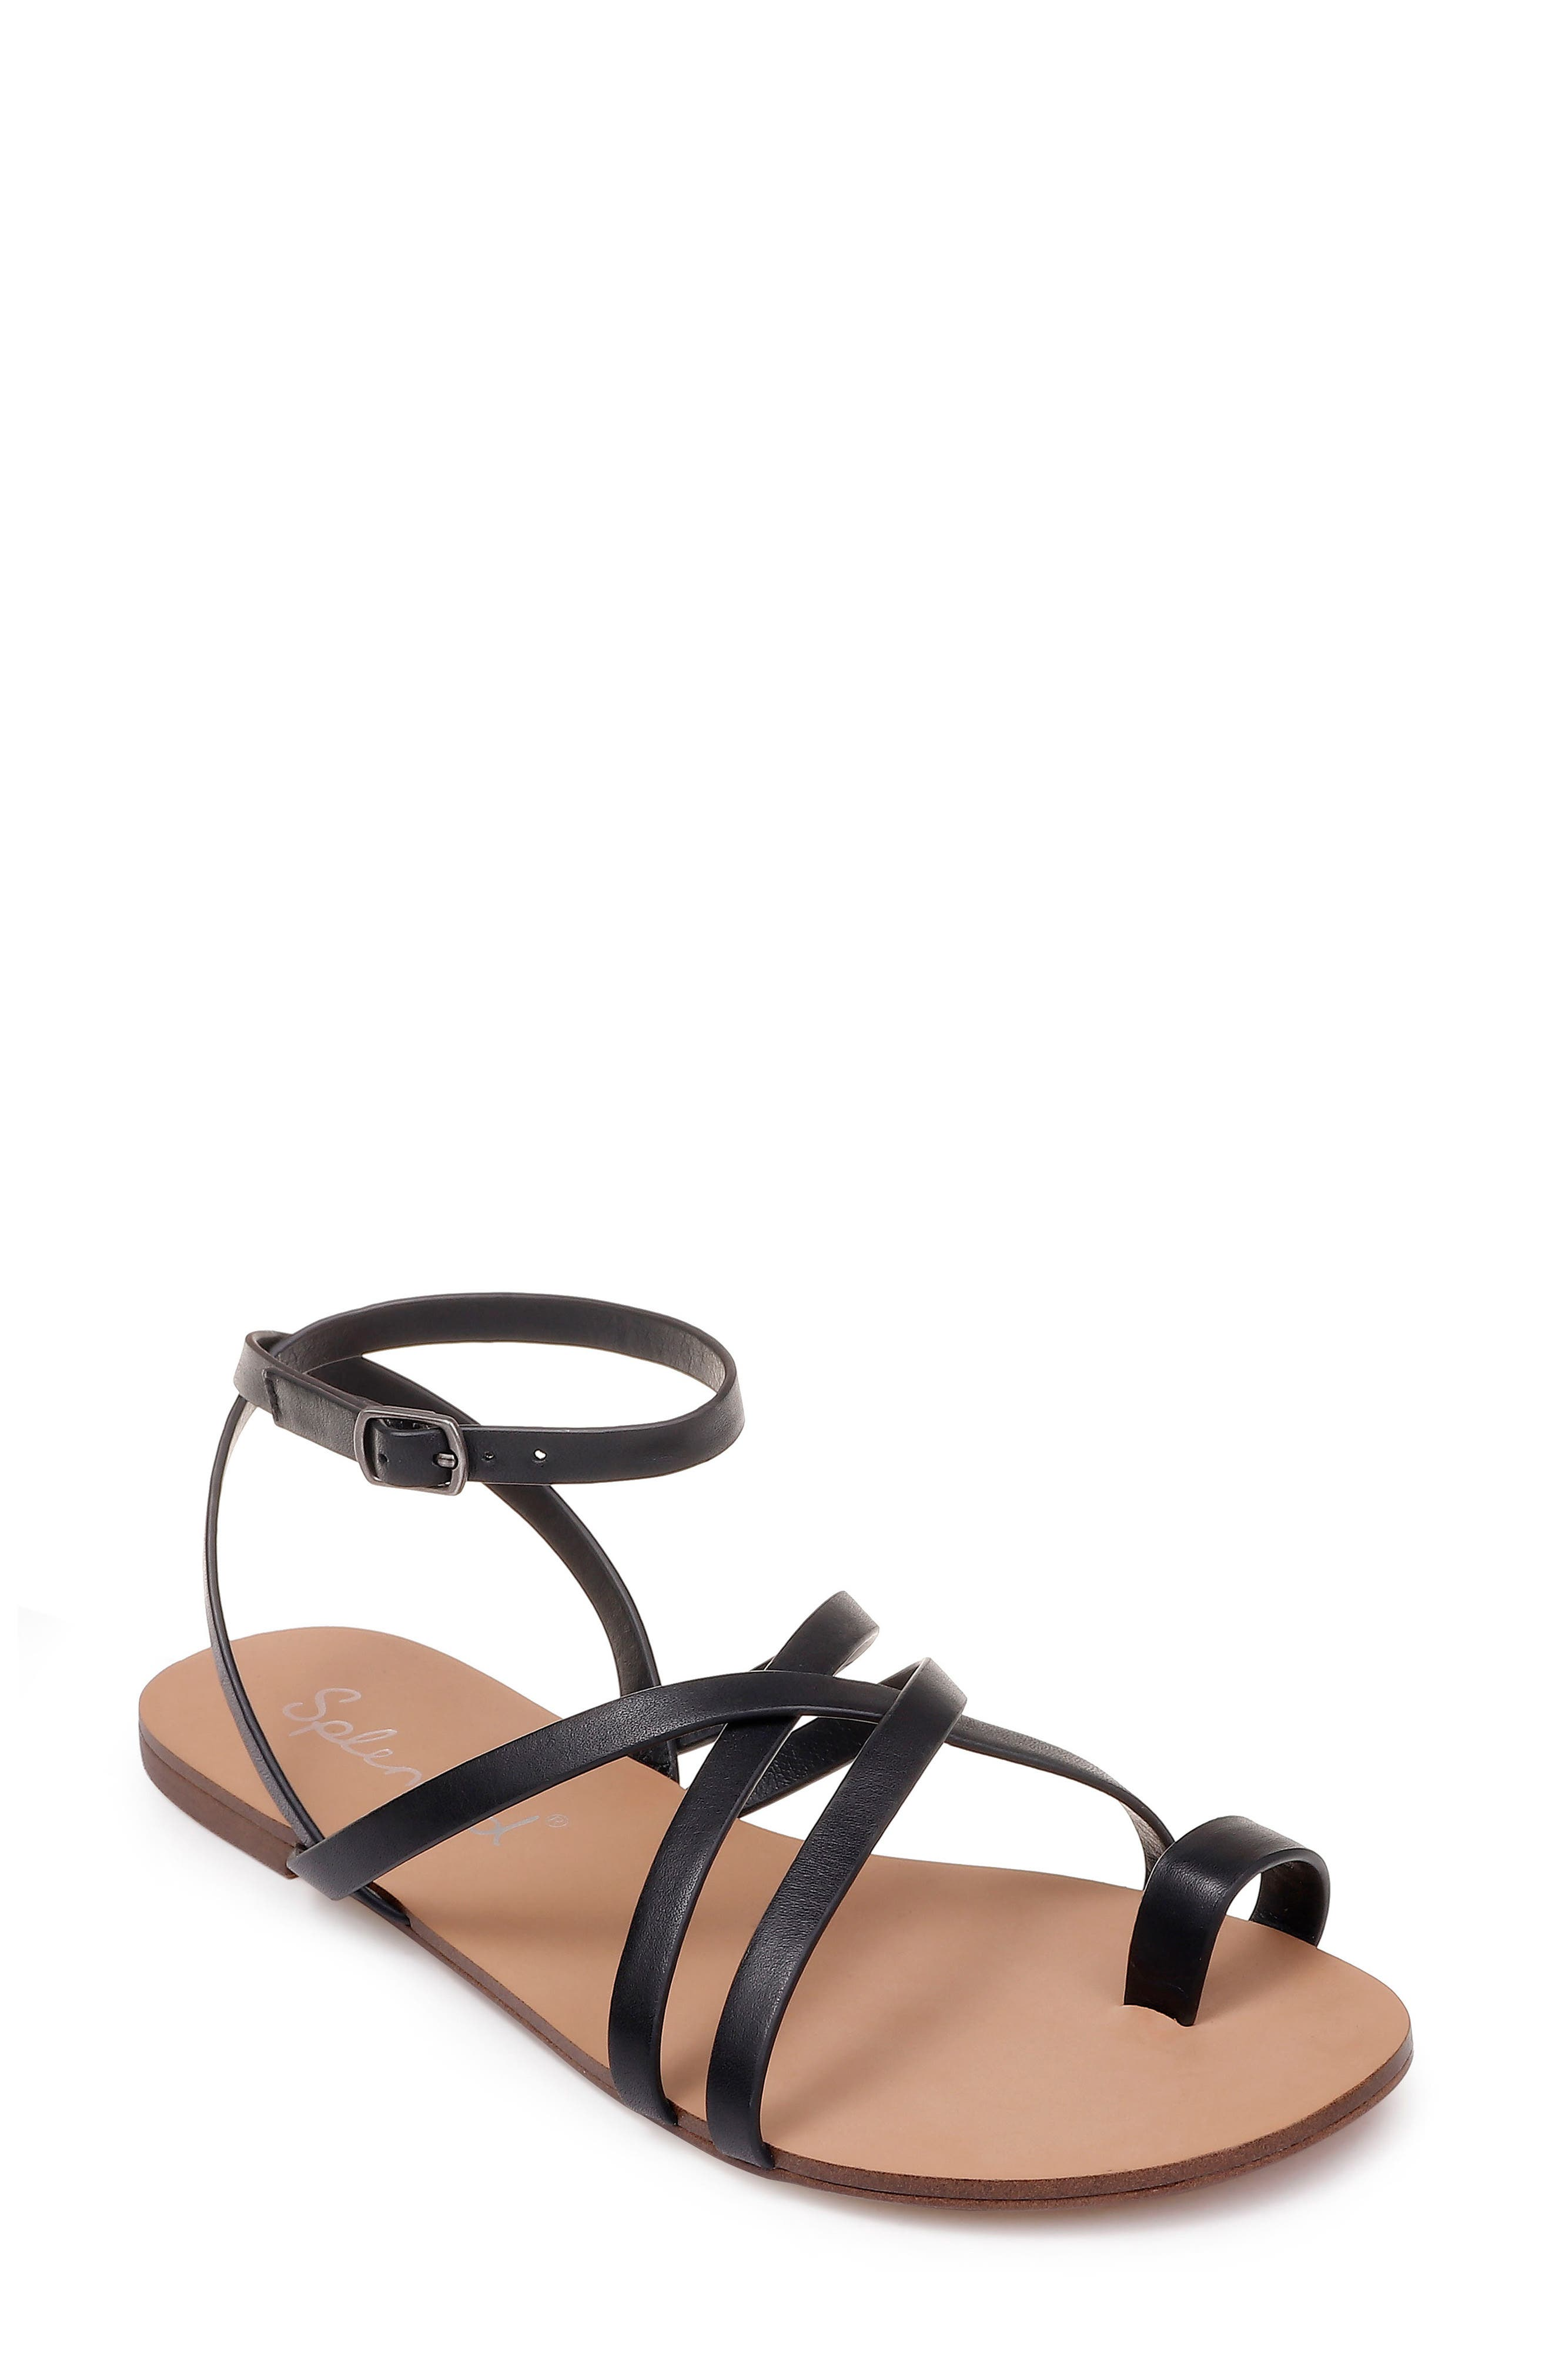 SPLENDID, Sully Strappy Toe Loop Sandal, Main thumbnail 1, color, BLACK LEATHER